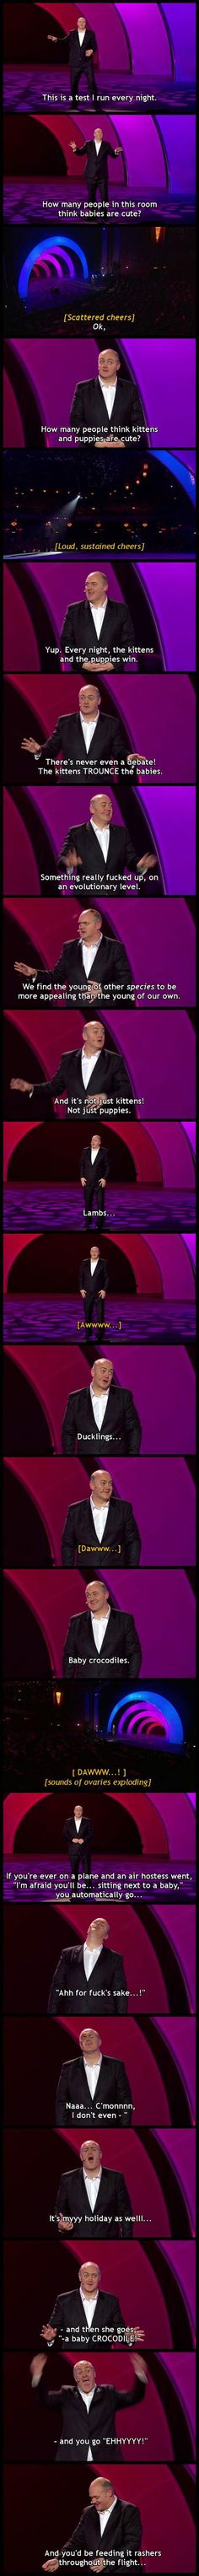 Dara O'Briain, being hilarious as ever. Also has a really funny one about video games, so check that out, too.